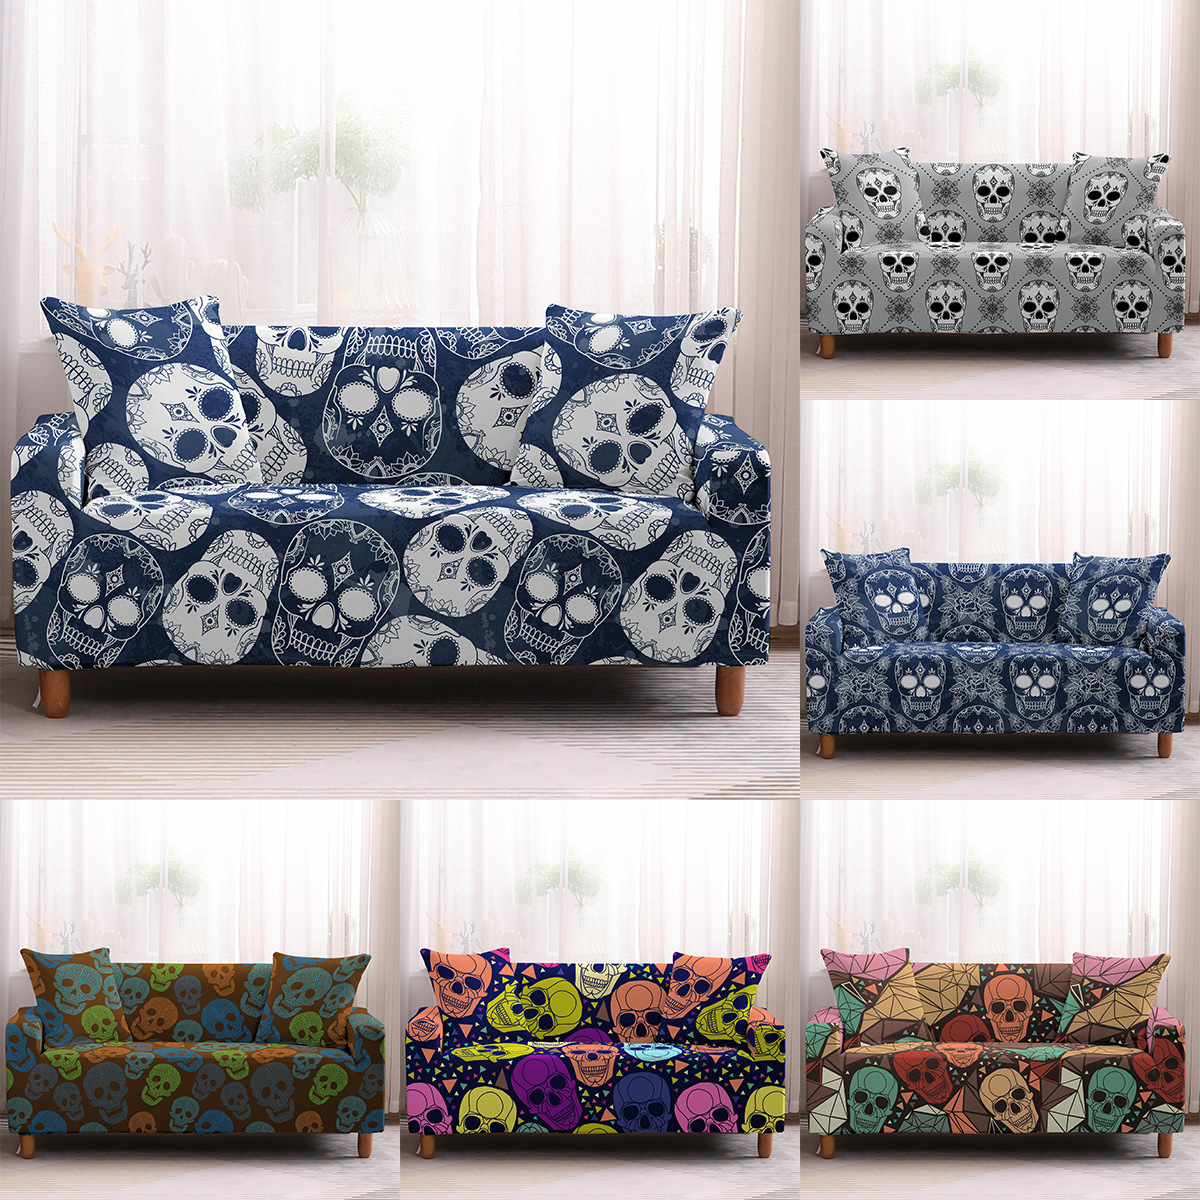 Sofa Covers Furniture Protector